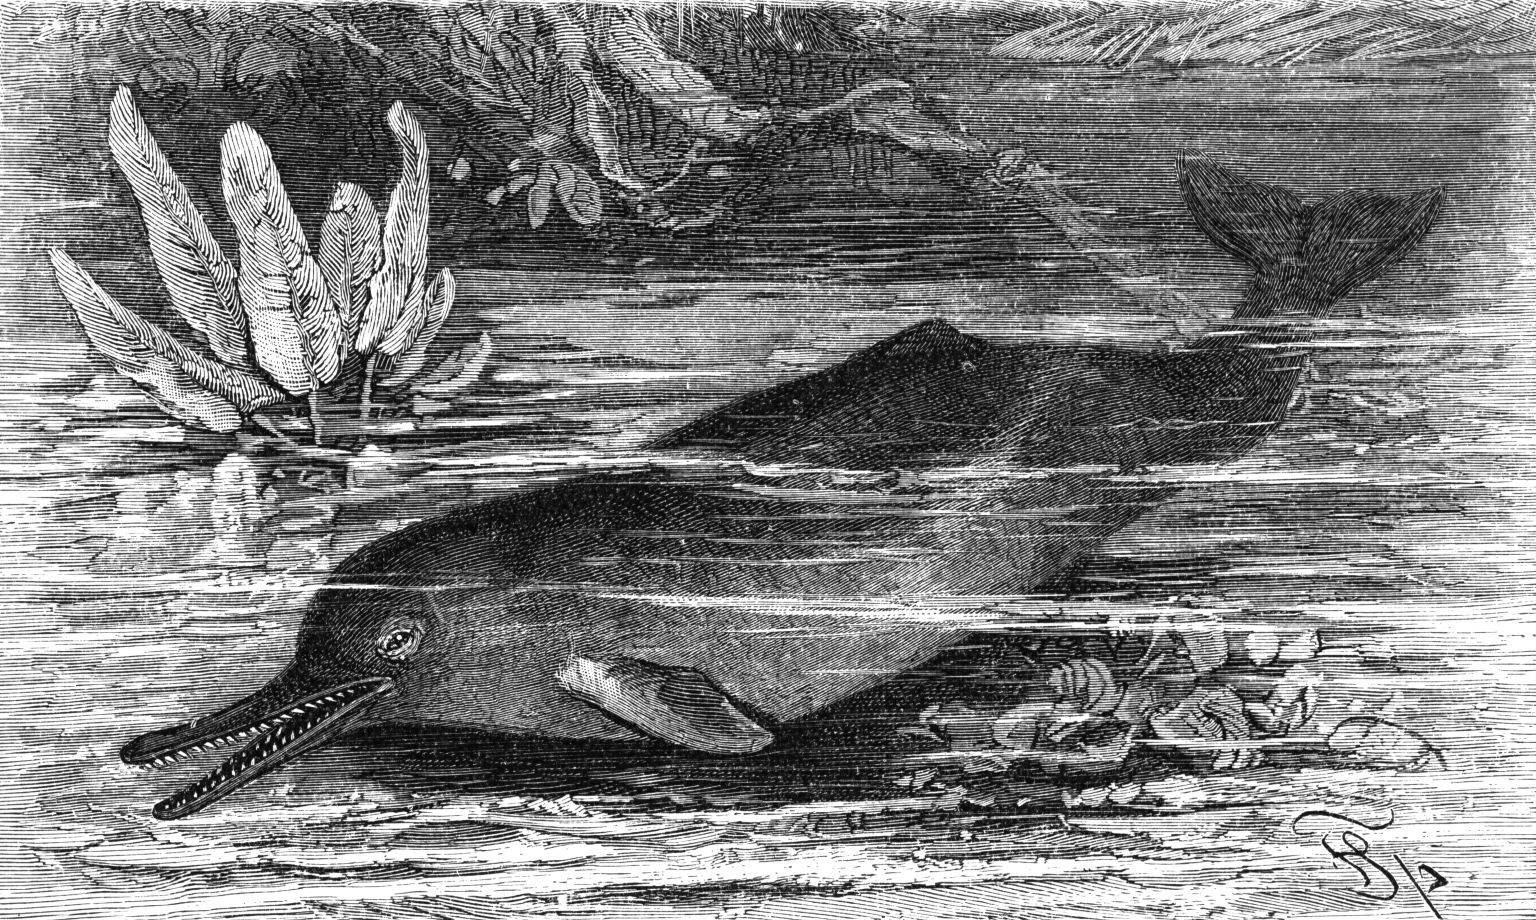 Image of Blind River Dolphin